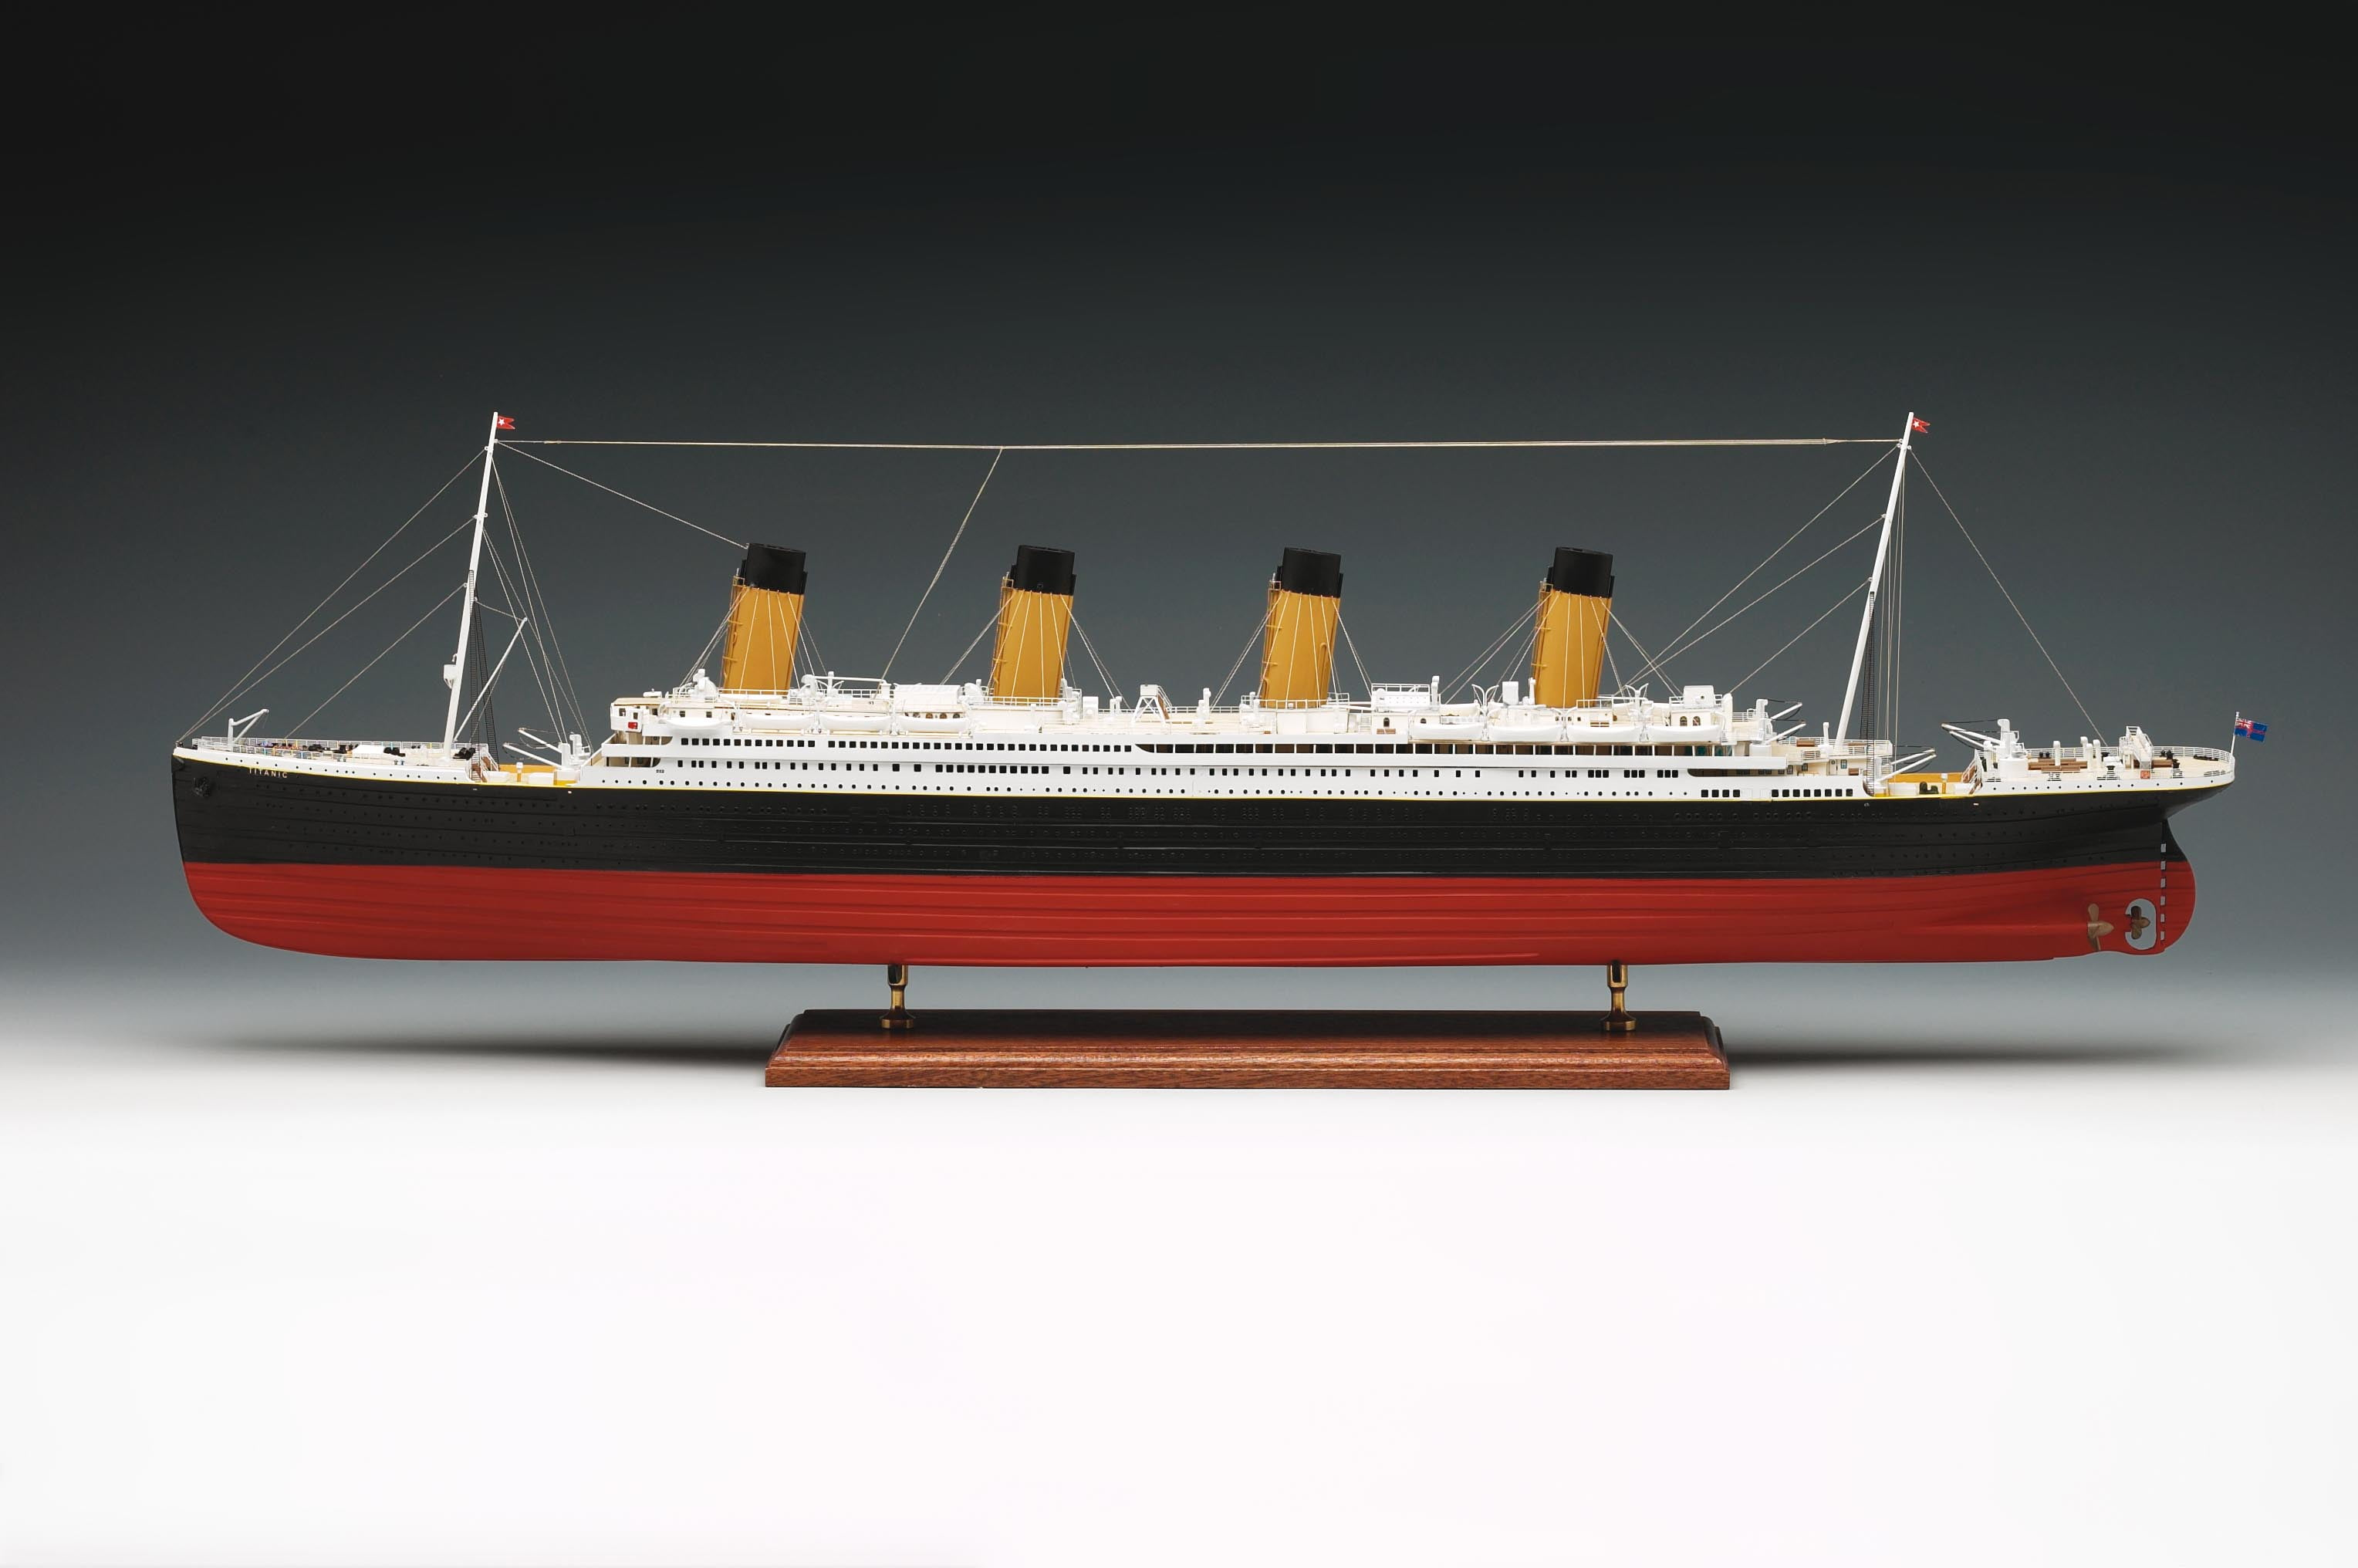 Amati RMS Titanic 1912 Wooden Model Ship Kit 1606 | Hobbies